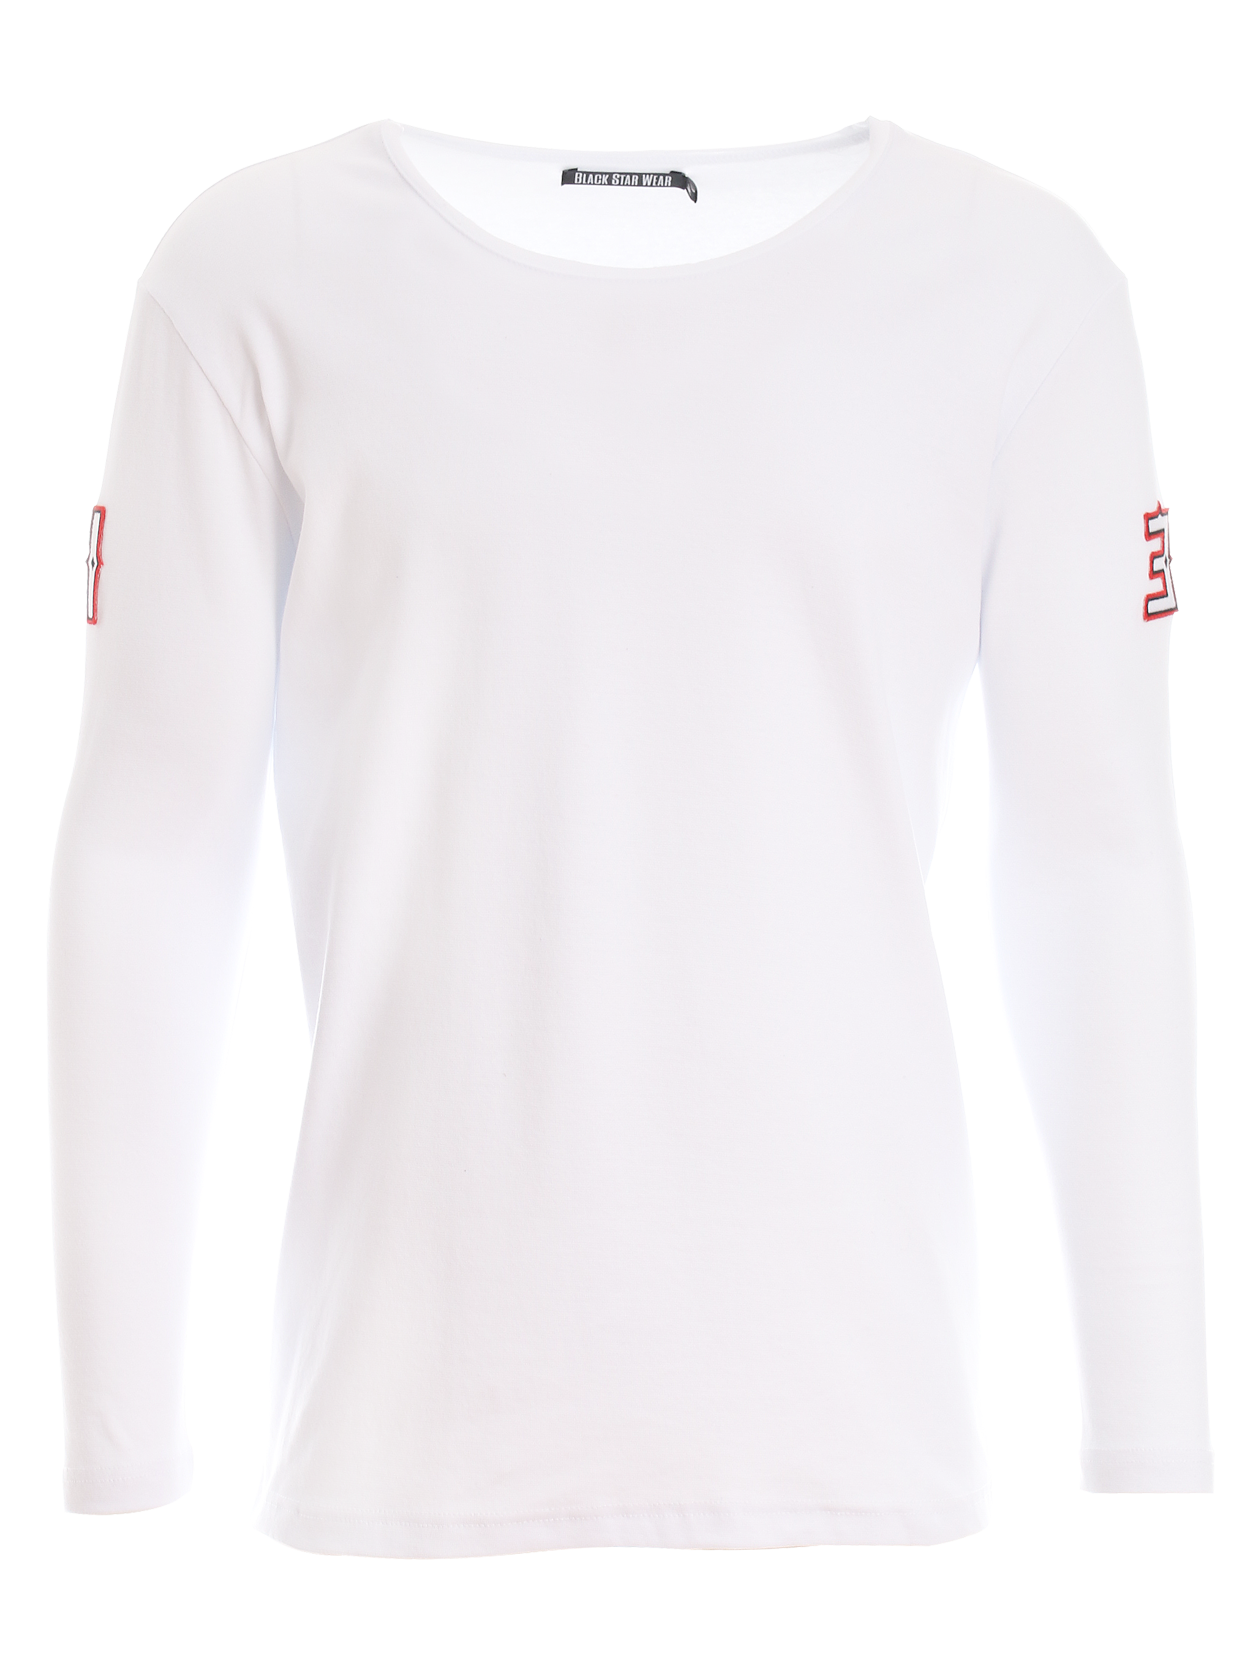 Mens long sleeve t-shirt SCOOP 13Mens long sleeve t-shirt by Black Star Wear. Straight cut, regular fit, raw cut neckline. Patches on sleeves - 1 and 3. Material: natural cotton - 90%, lycra - 10%. Avaliable in black, gray and white.<br><br>size: M<br>color: White<br>gender: male